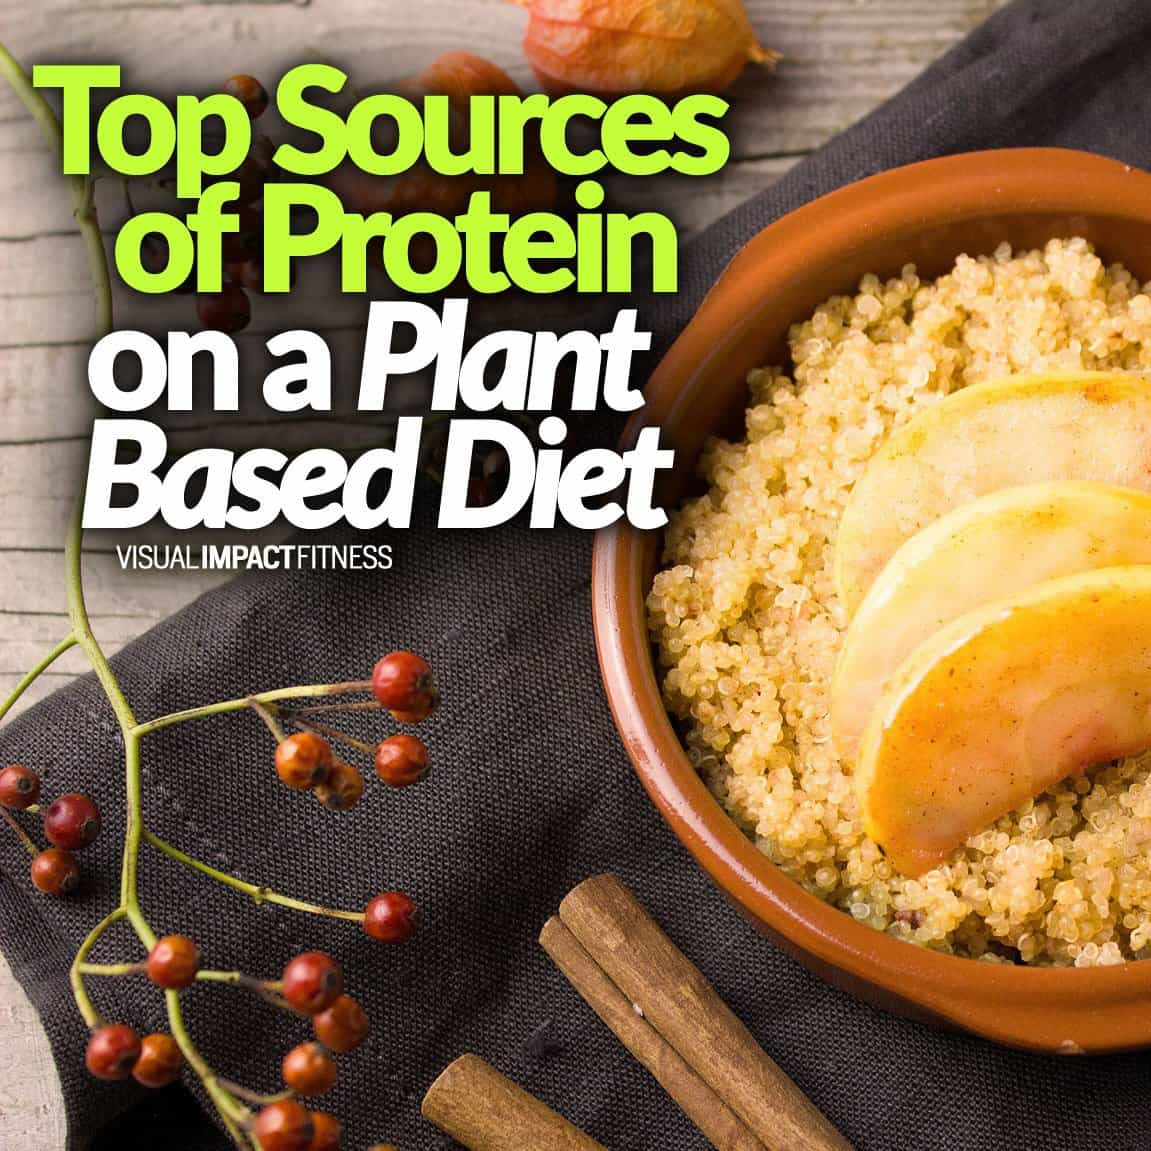 Top Sources of Protein on a Plant Based Diet